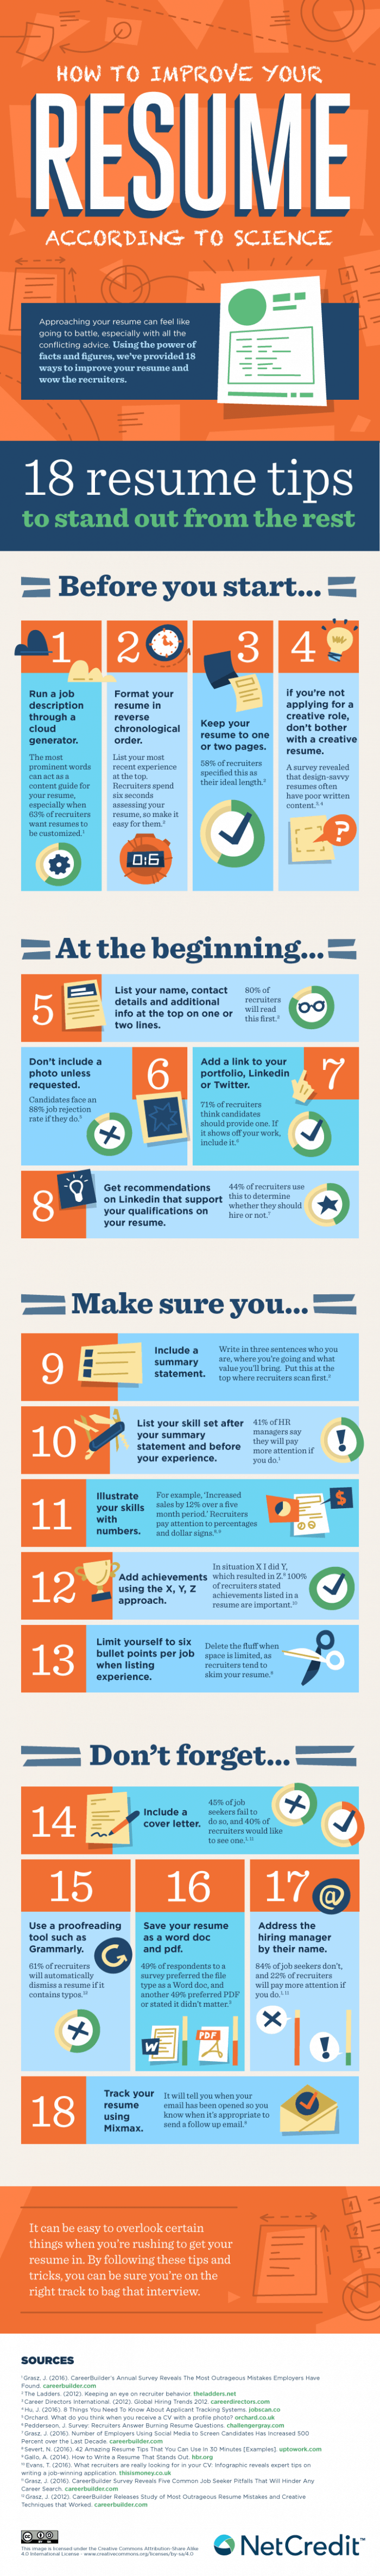 Infographic on how to improve your CV using science data and research.